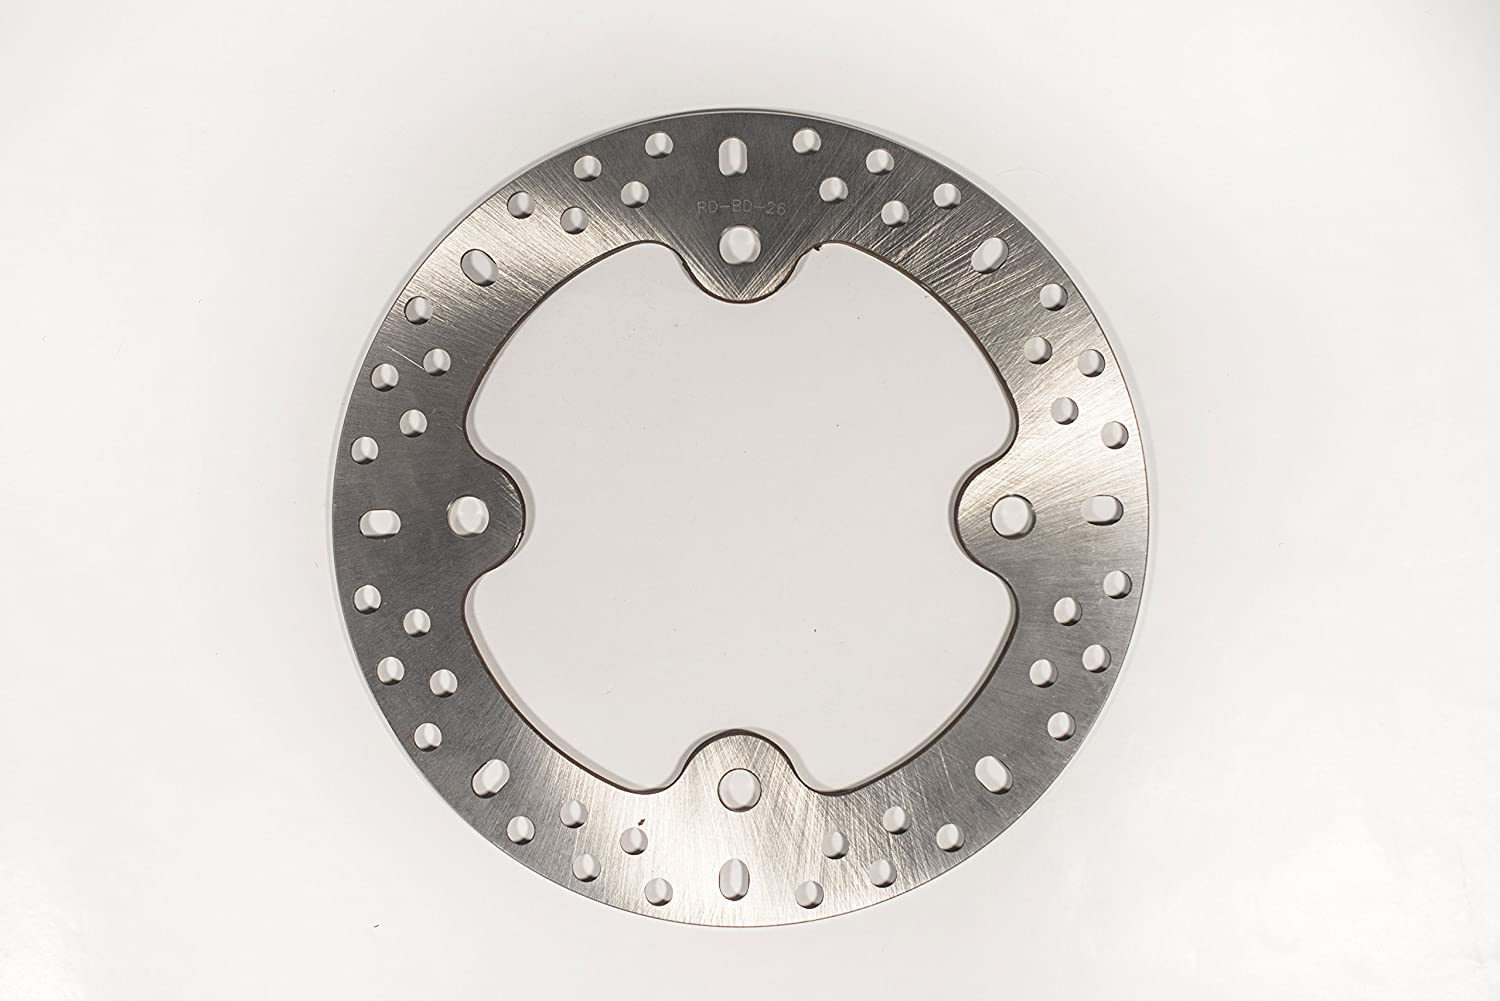 Brake Rotor Disc for Polaris Razor RZR 800 2008-2014 Front 1 Side by Race-Driven